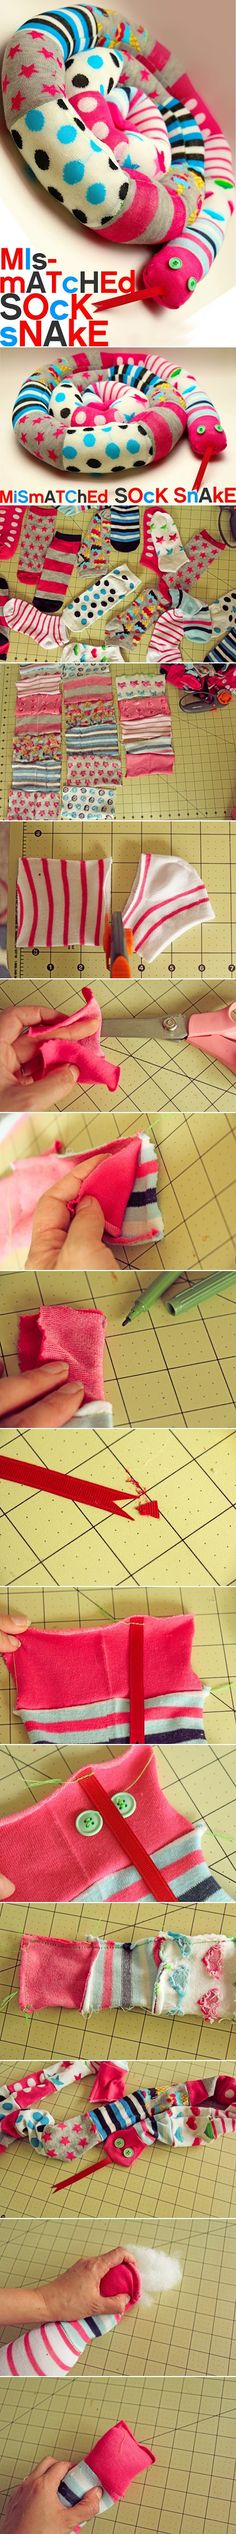 DIY Sock Snake- so not a quilt but still a cute sewing project idea Sock Crafts, Cute Crafts, Crafts To Do, Fabric Crafts, Sewing Crafts, Crafts For Kids, Easy Crafts, Sock Snake, Craft Projects